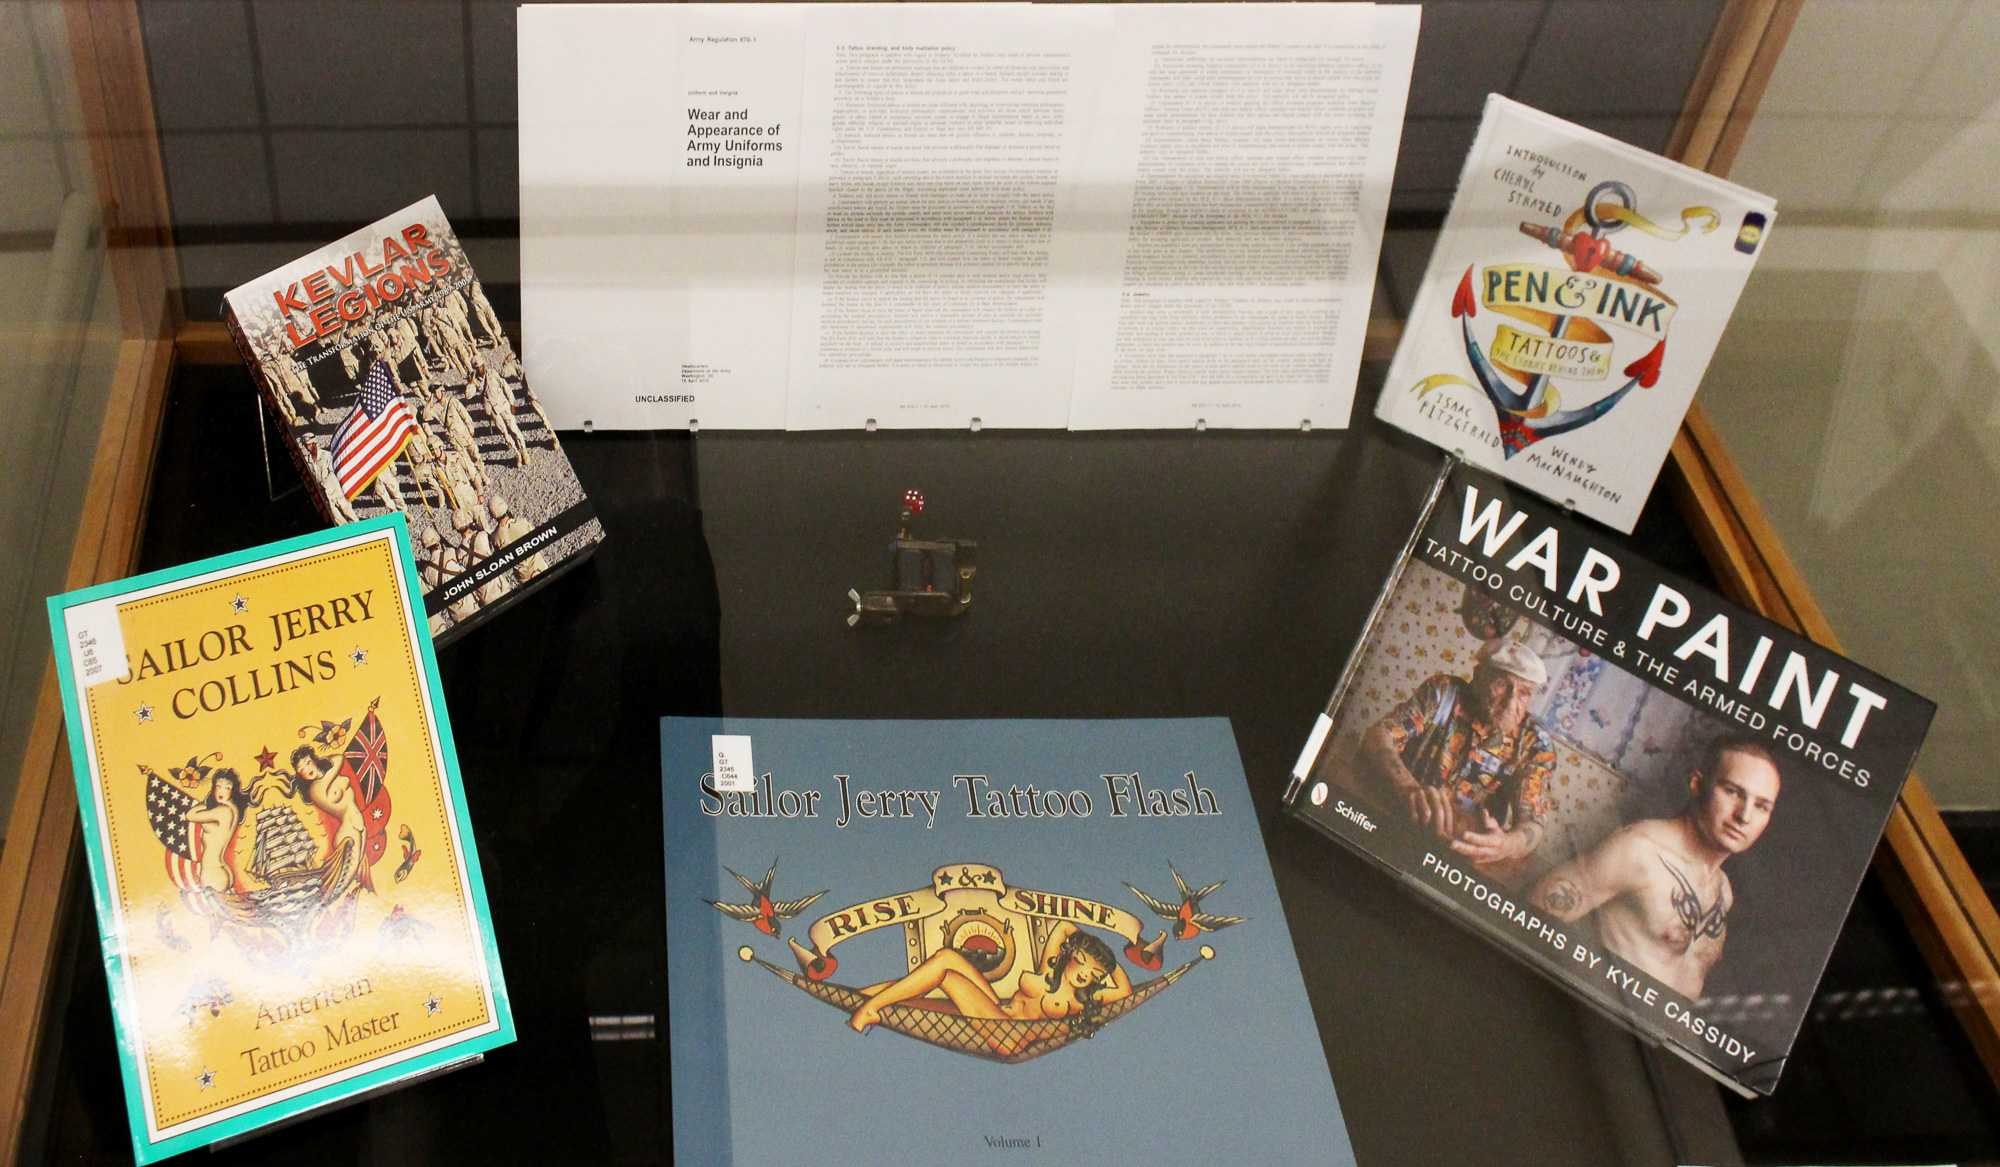 Artifacts for the Symbols of Service exhibit sit in one of six display cases on the first floor of the Main Library. The gallery focuses on U.S. veterans and their tattoos, while also addressing other topics such as readjusting to civilian life after military service.